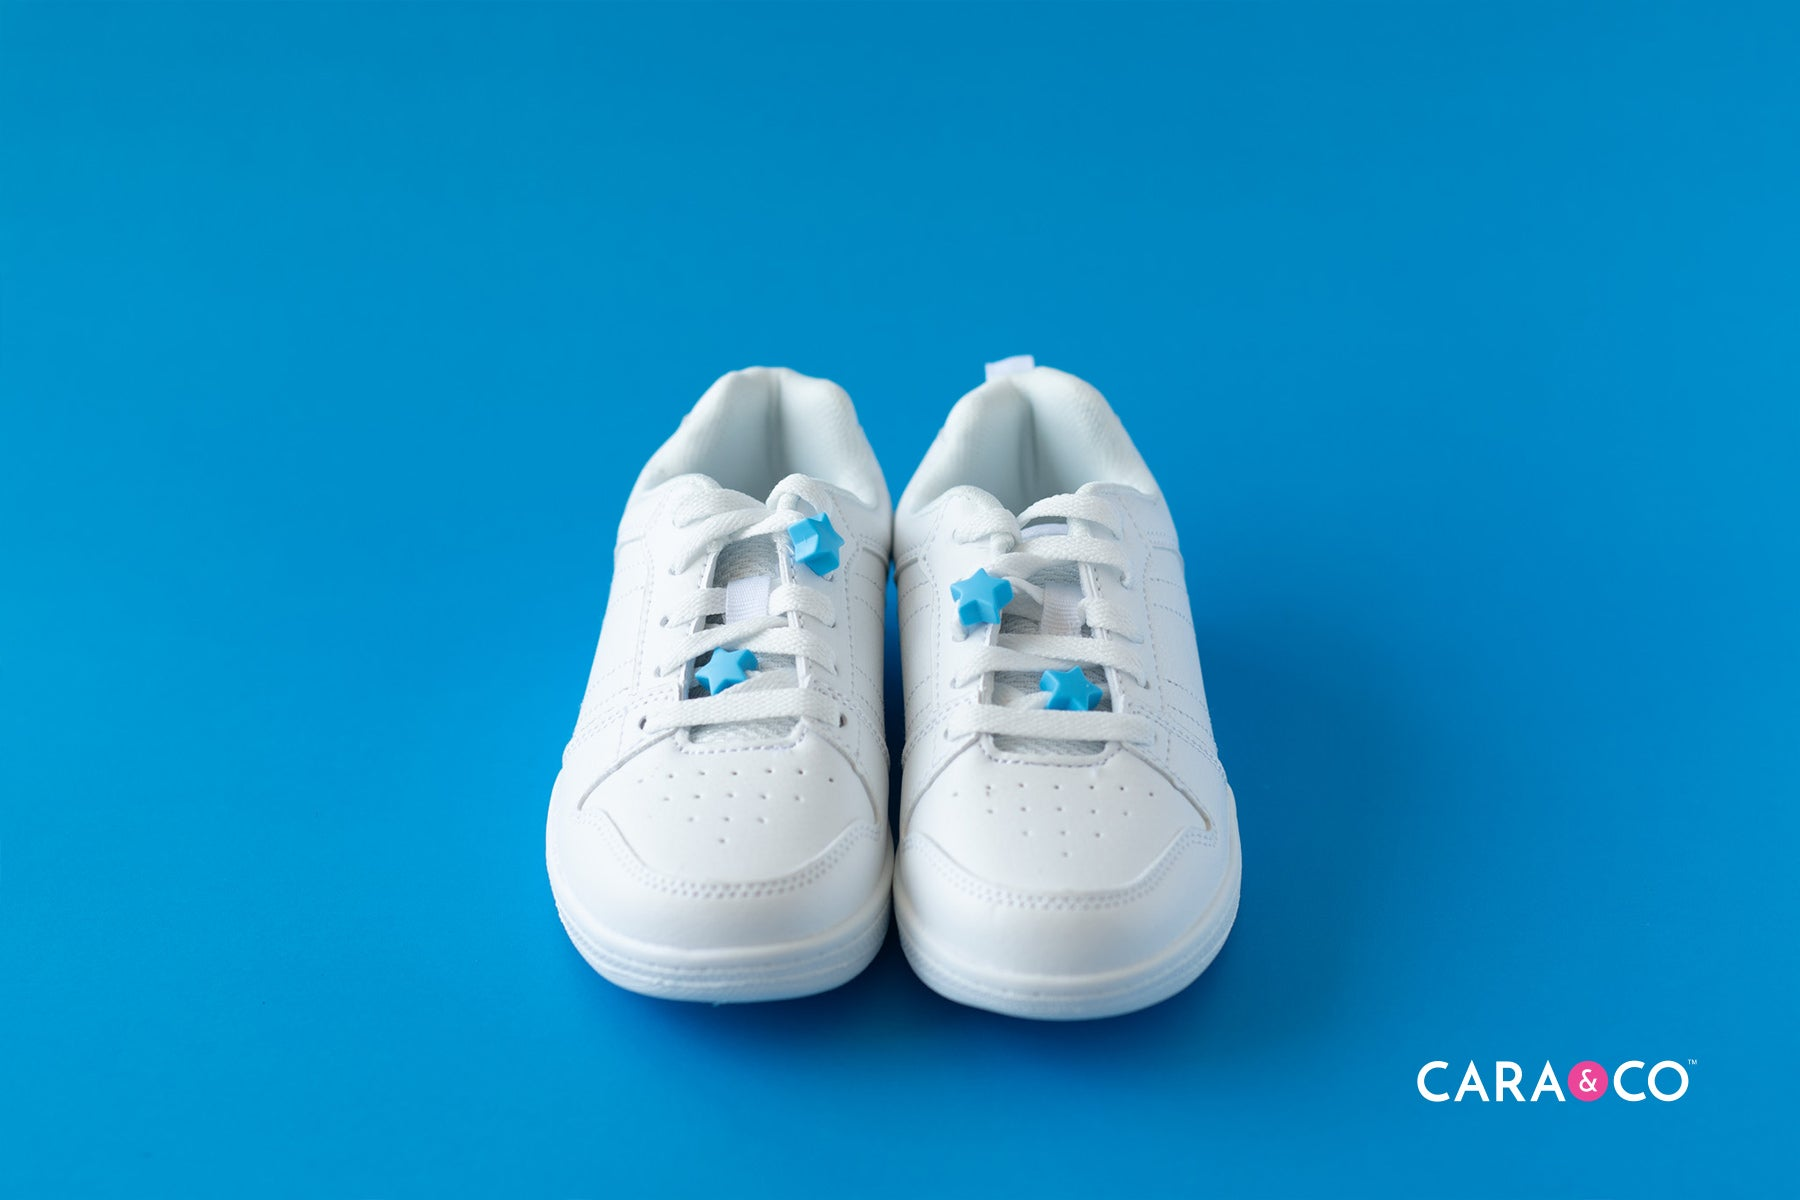 Back to school in style! - Shoe lace bling!